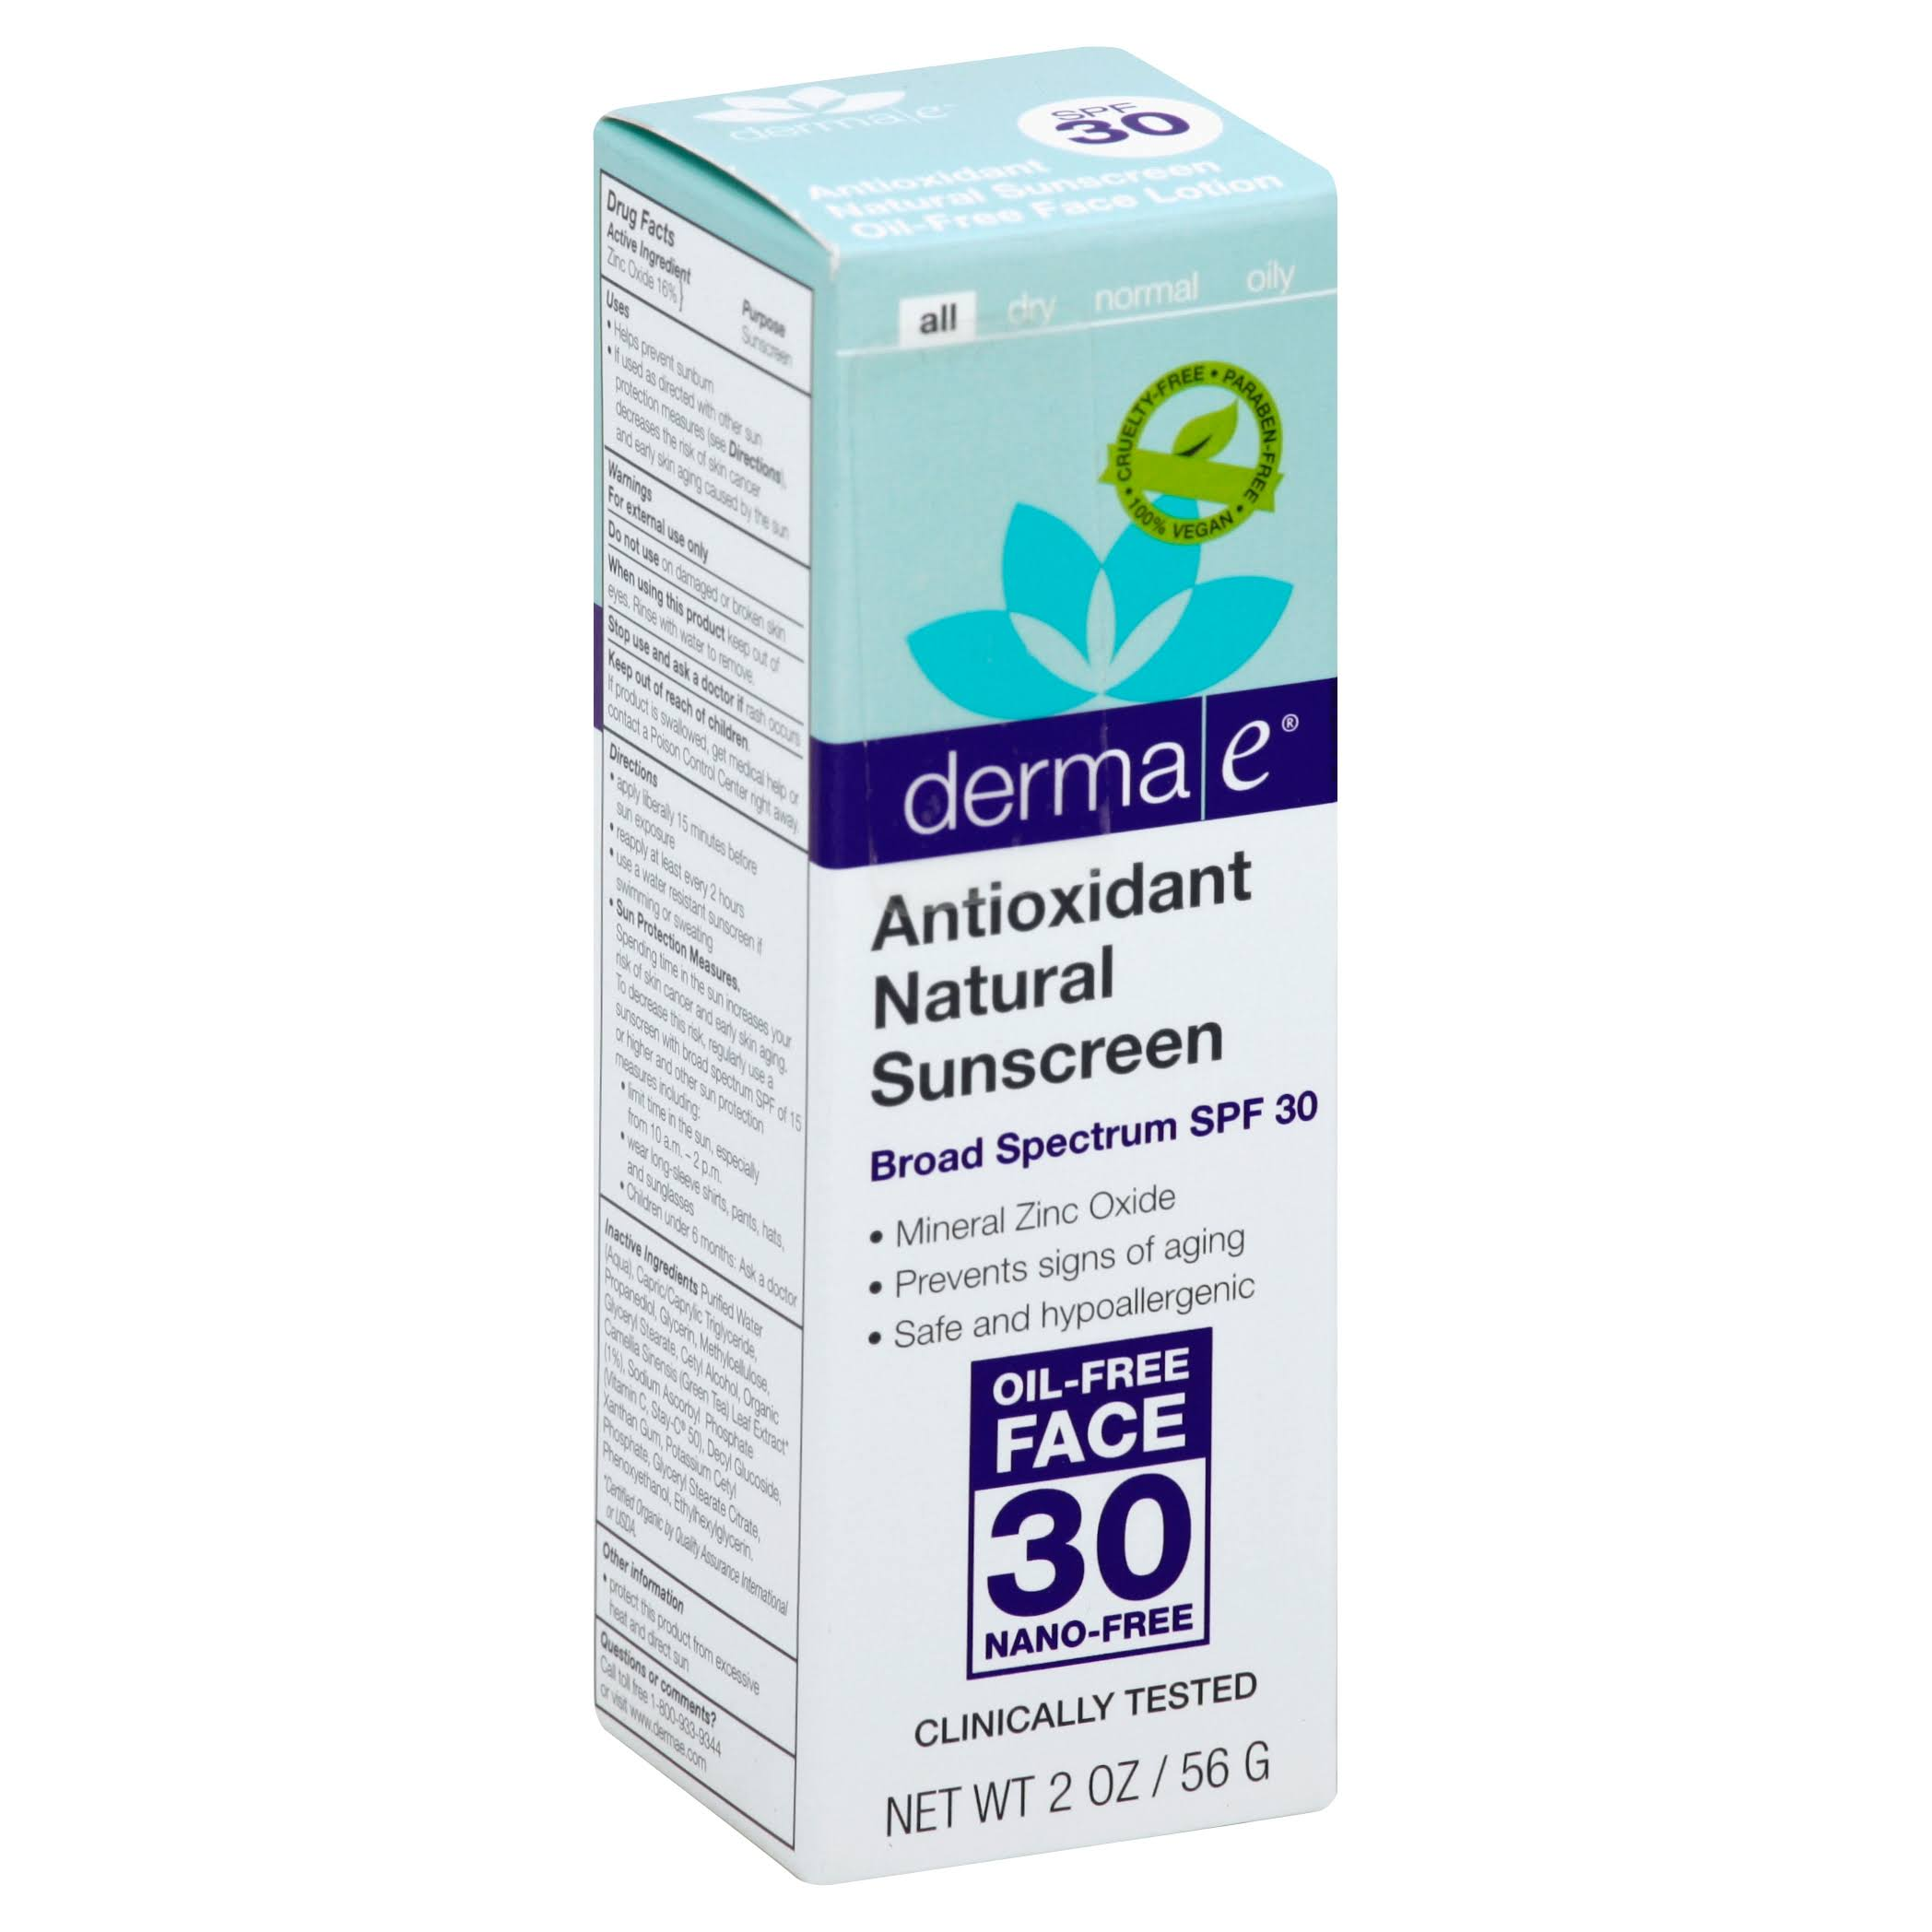 Derma E Antioxidant Natural Sunscreen - SPF 30, 56g